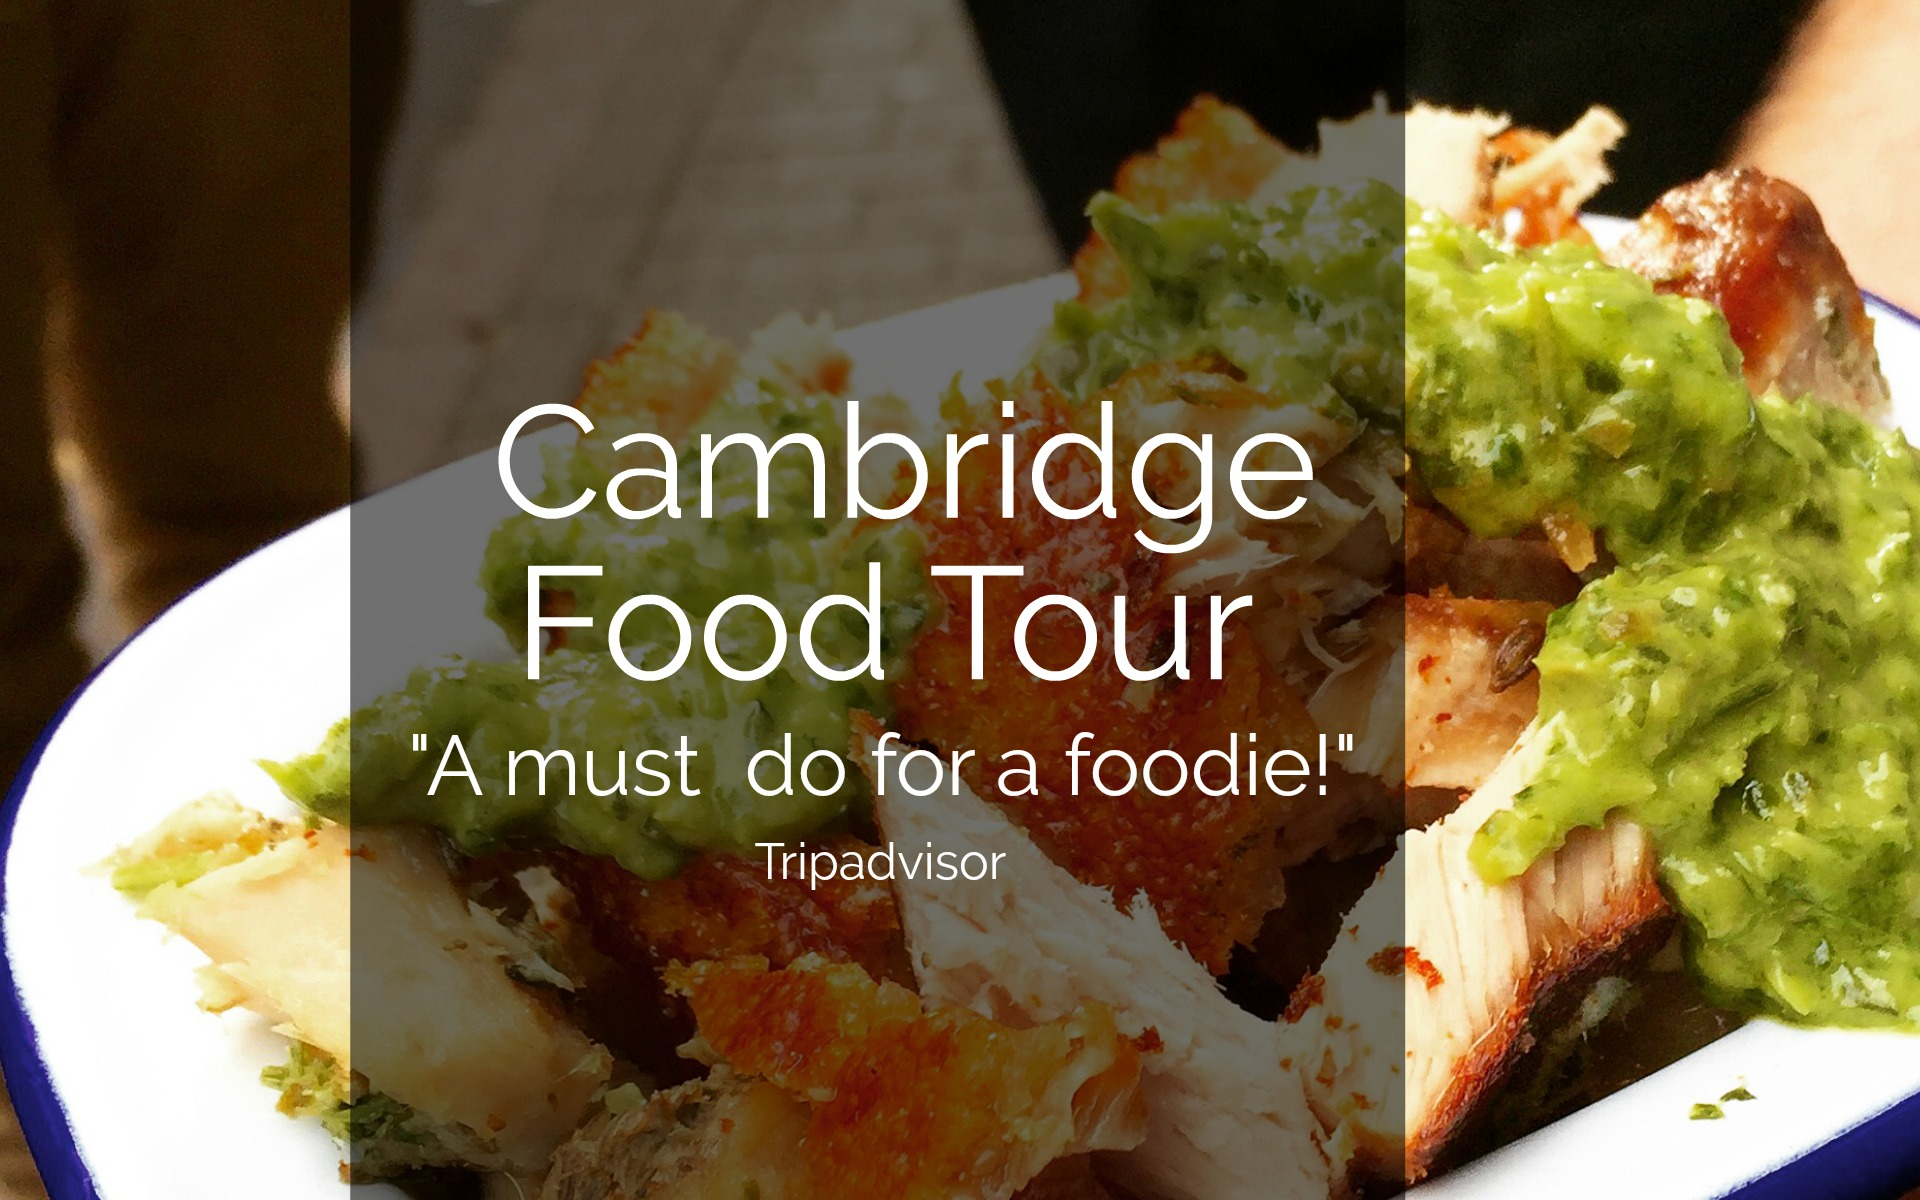 Cambridge Food Tour